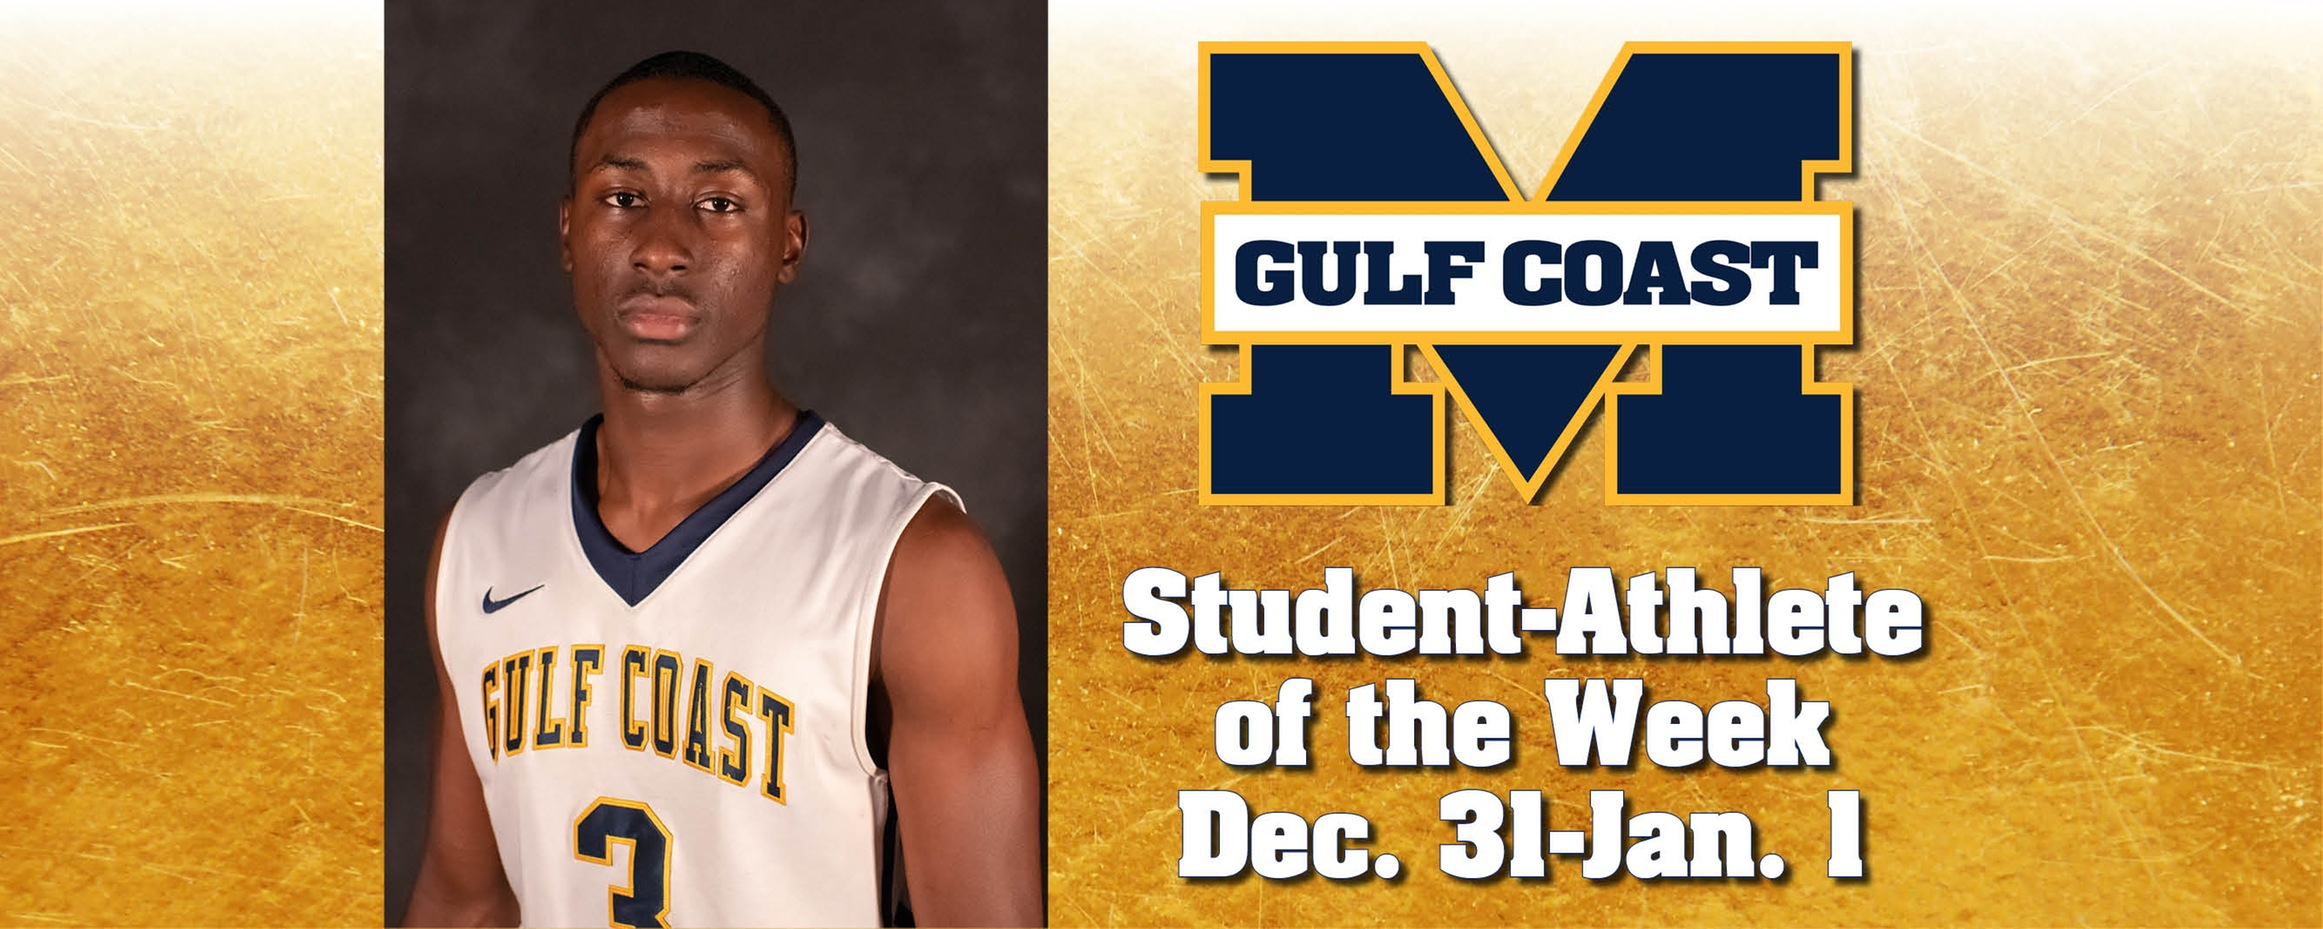 Logan named MGCCC Student-Athlete of the Week